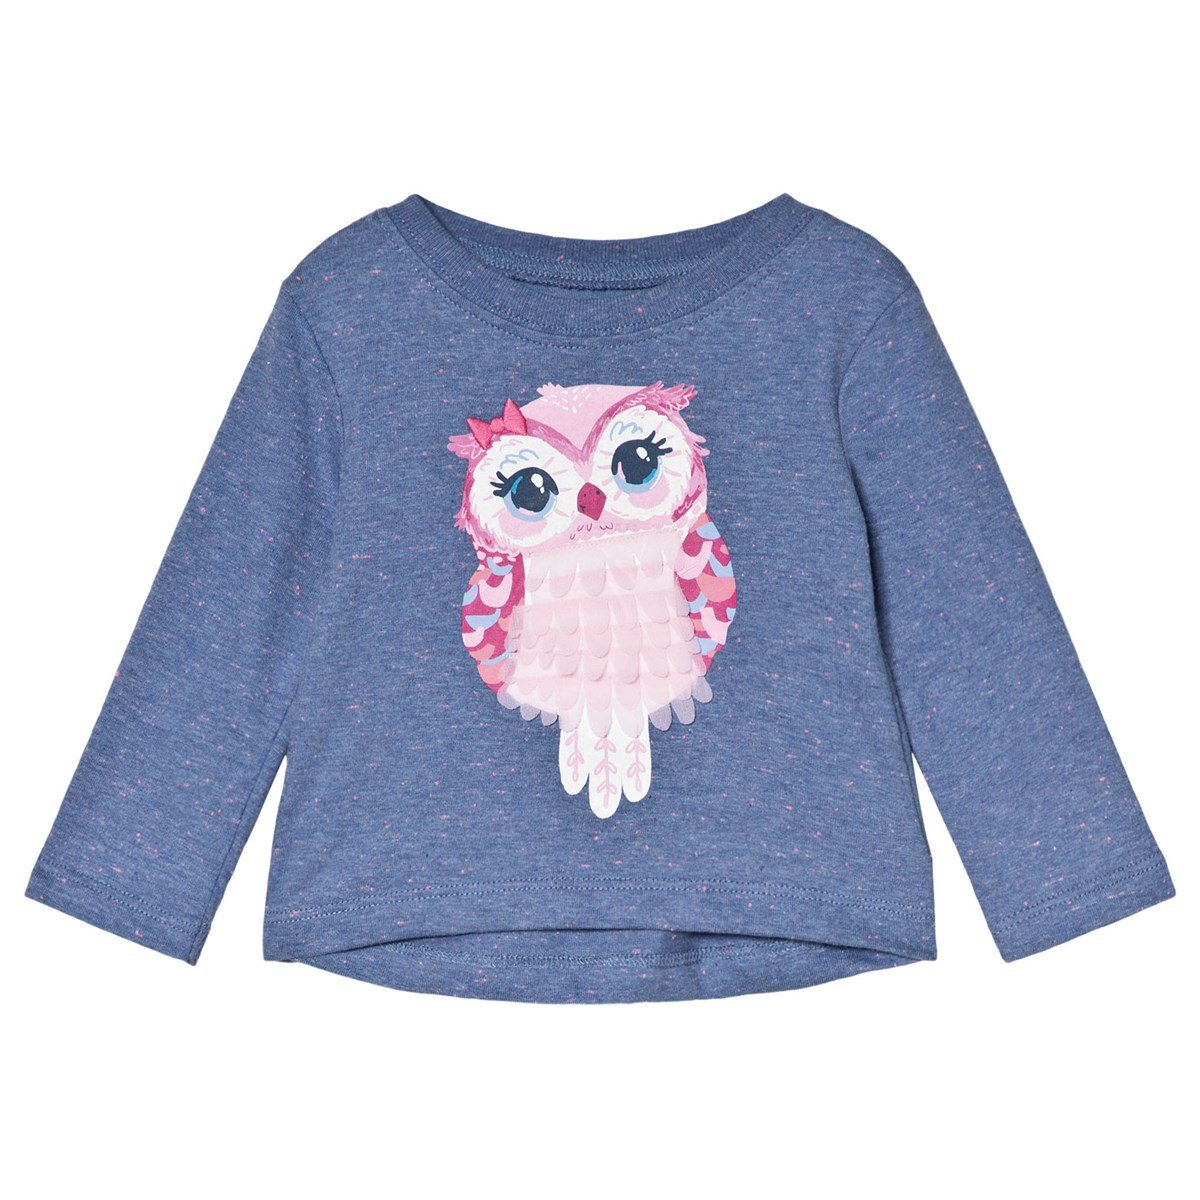 Adorable Owl L/S Baby Tee by Hatley